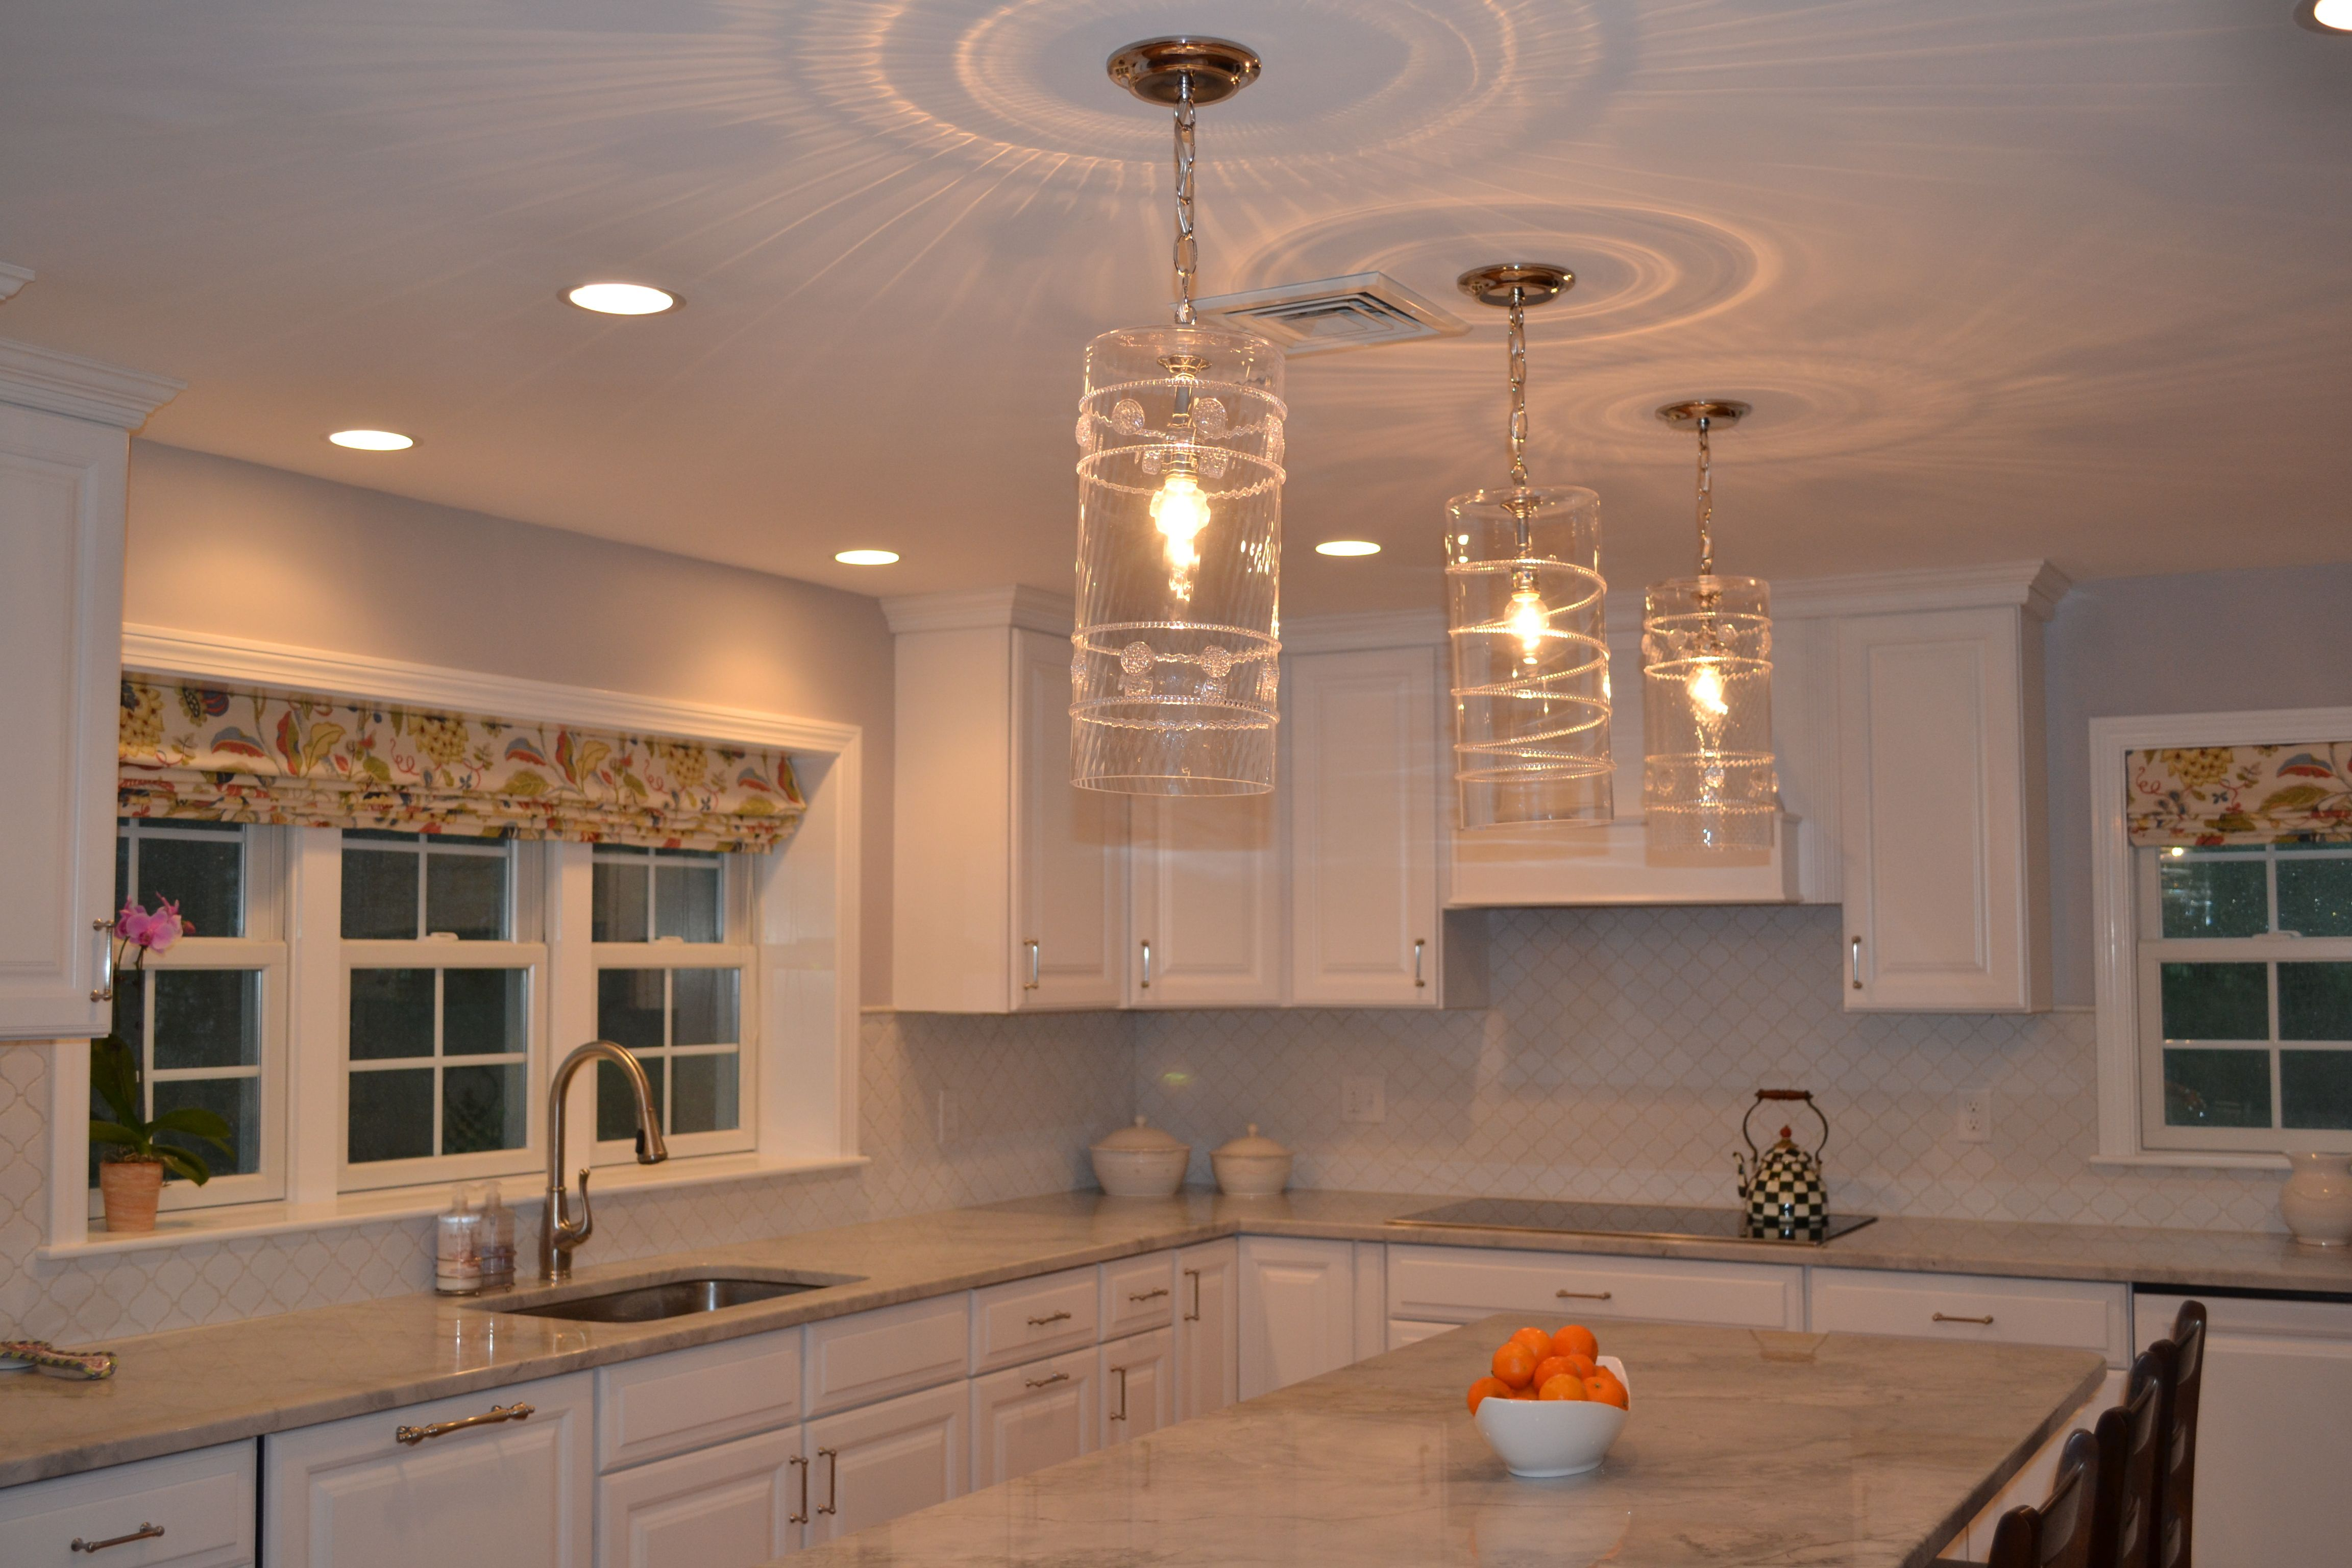 Light Fixtures For Kitchen Island Juliska Pendant Lights Over Island Willow Cir Kitchen